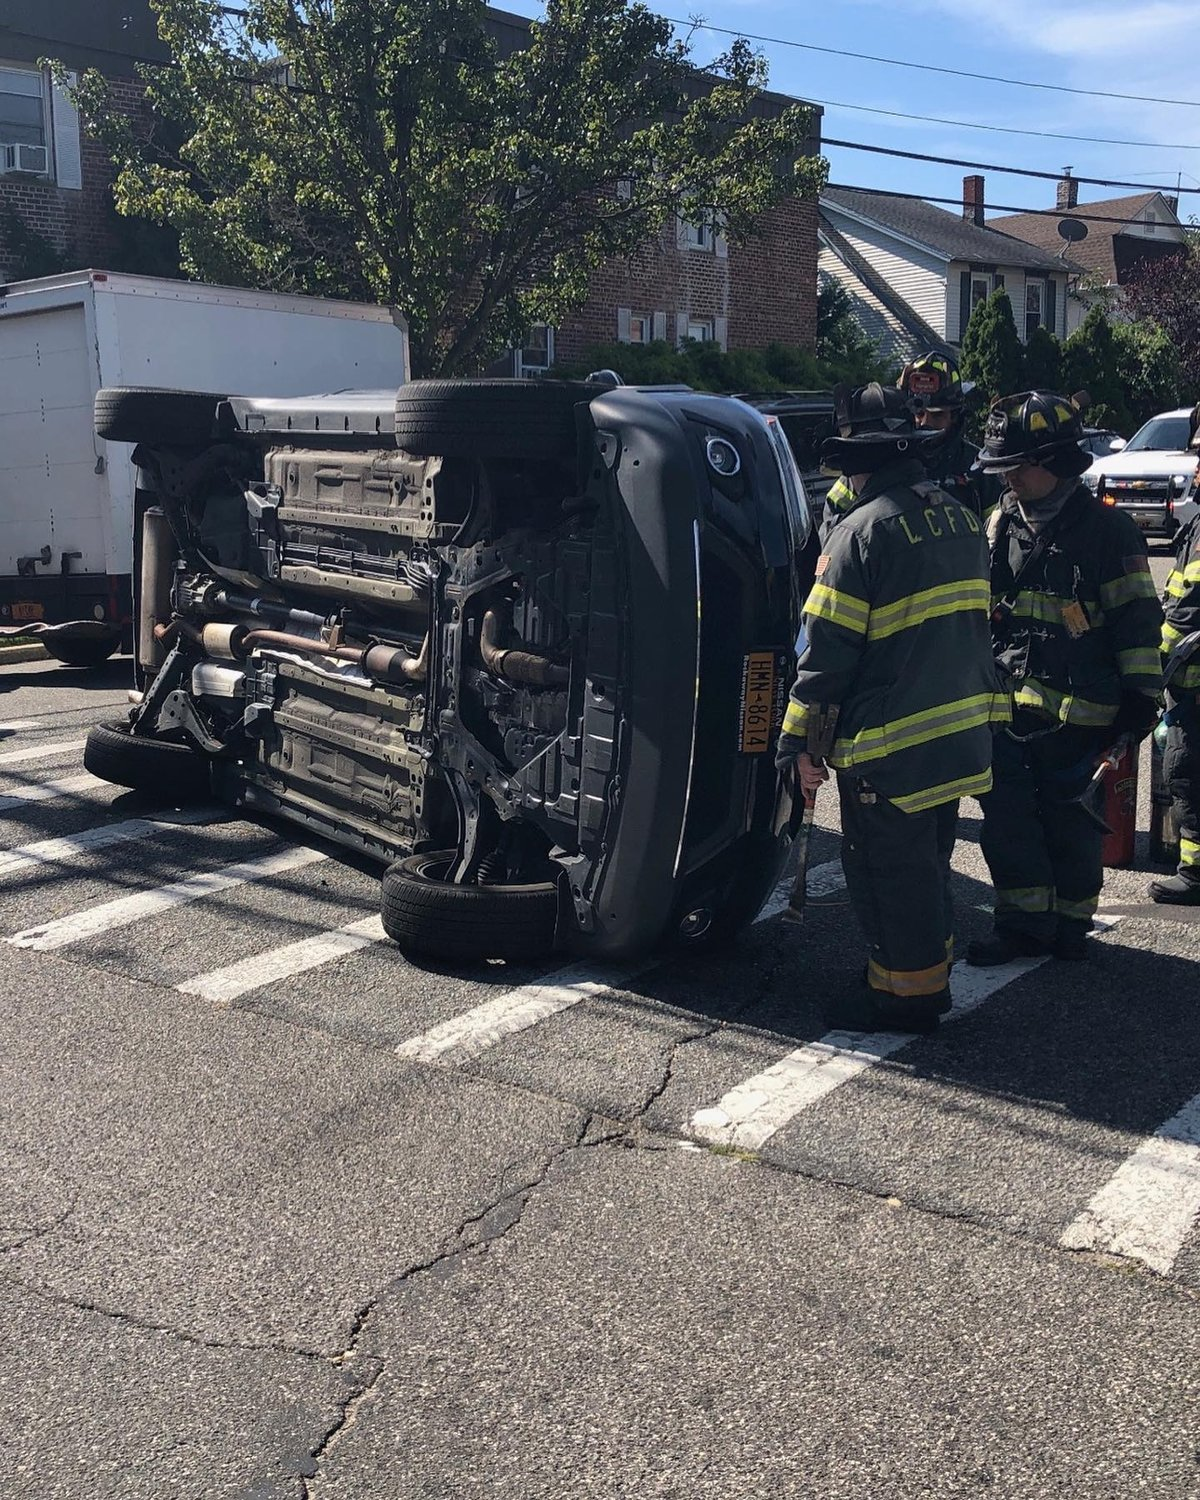 A car flipped onto its left side at the intersection of Cedarhurst and Fifth avenues in Cedarhurst just after 11 a.m. on Sept. 20. Two people were taken to a local hospital.